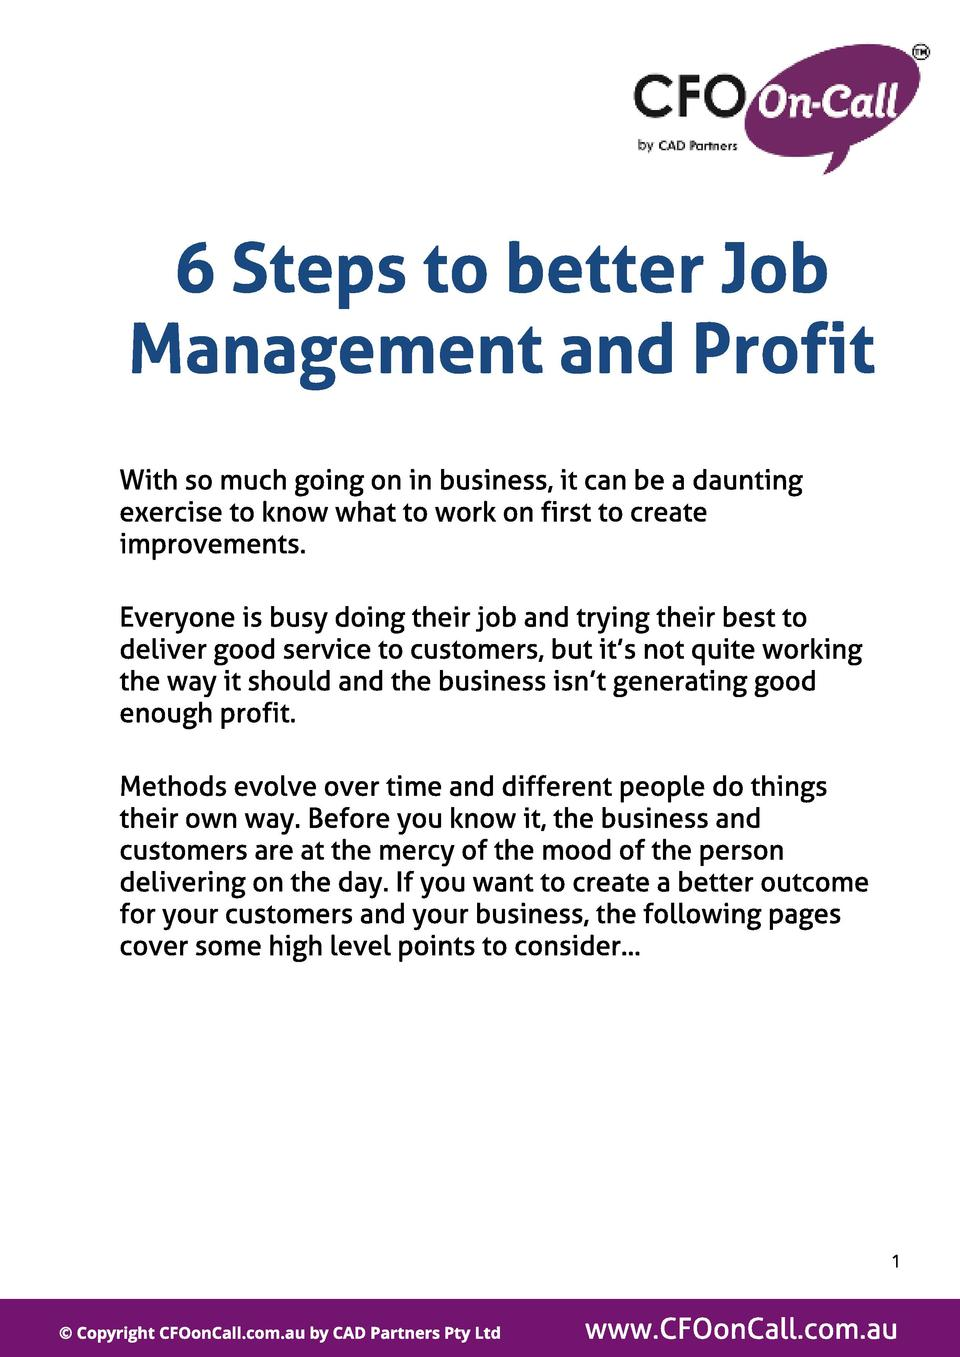 6 St eps t o bet t er Job Management and Prof it With so much going on in business, it can be a daunting exercise to know ...